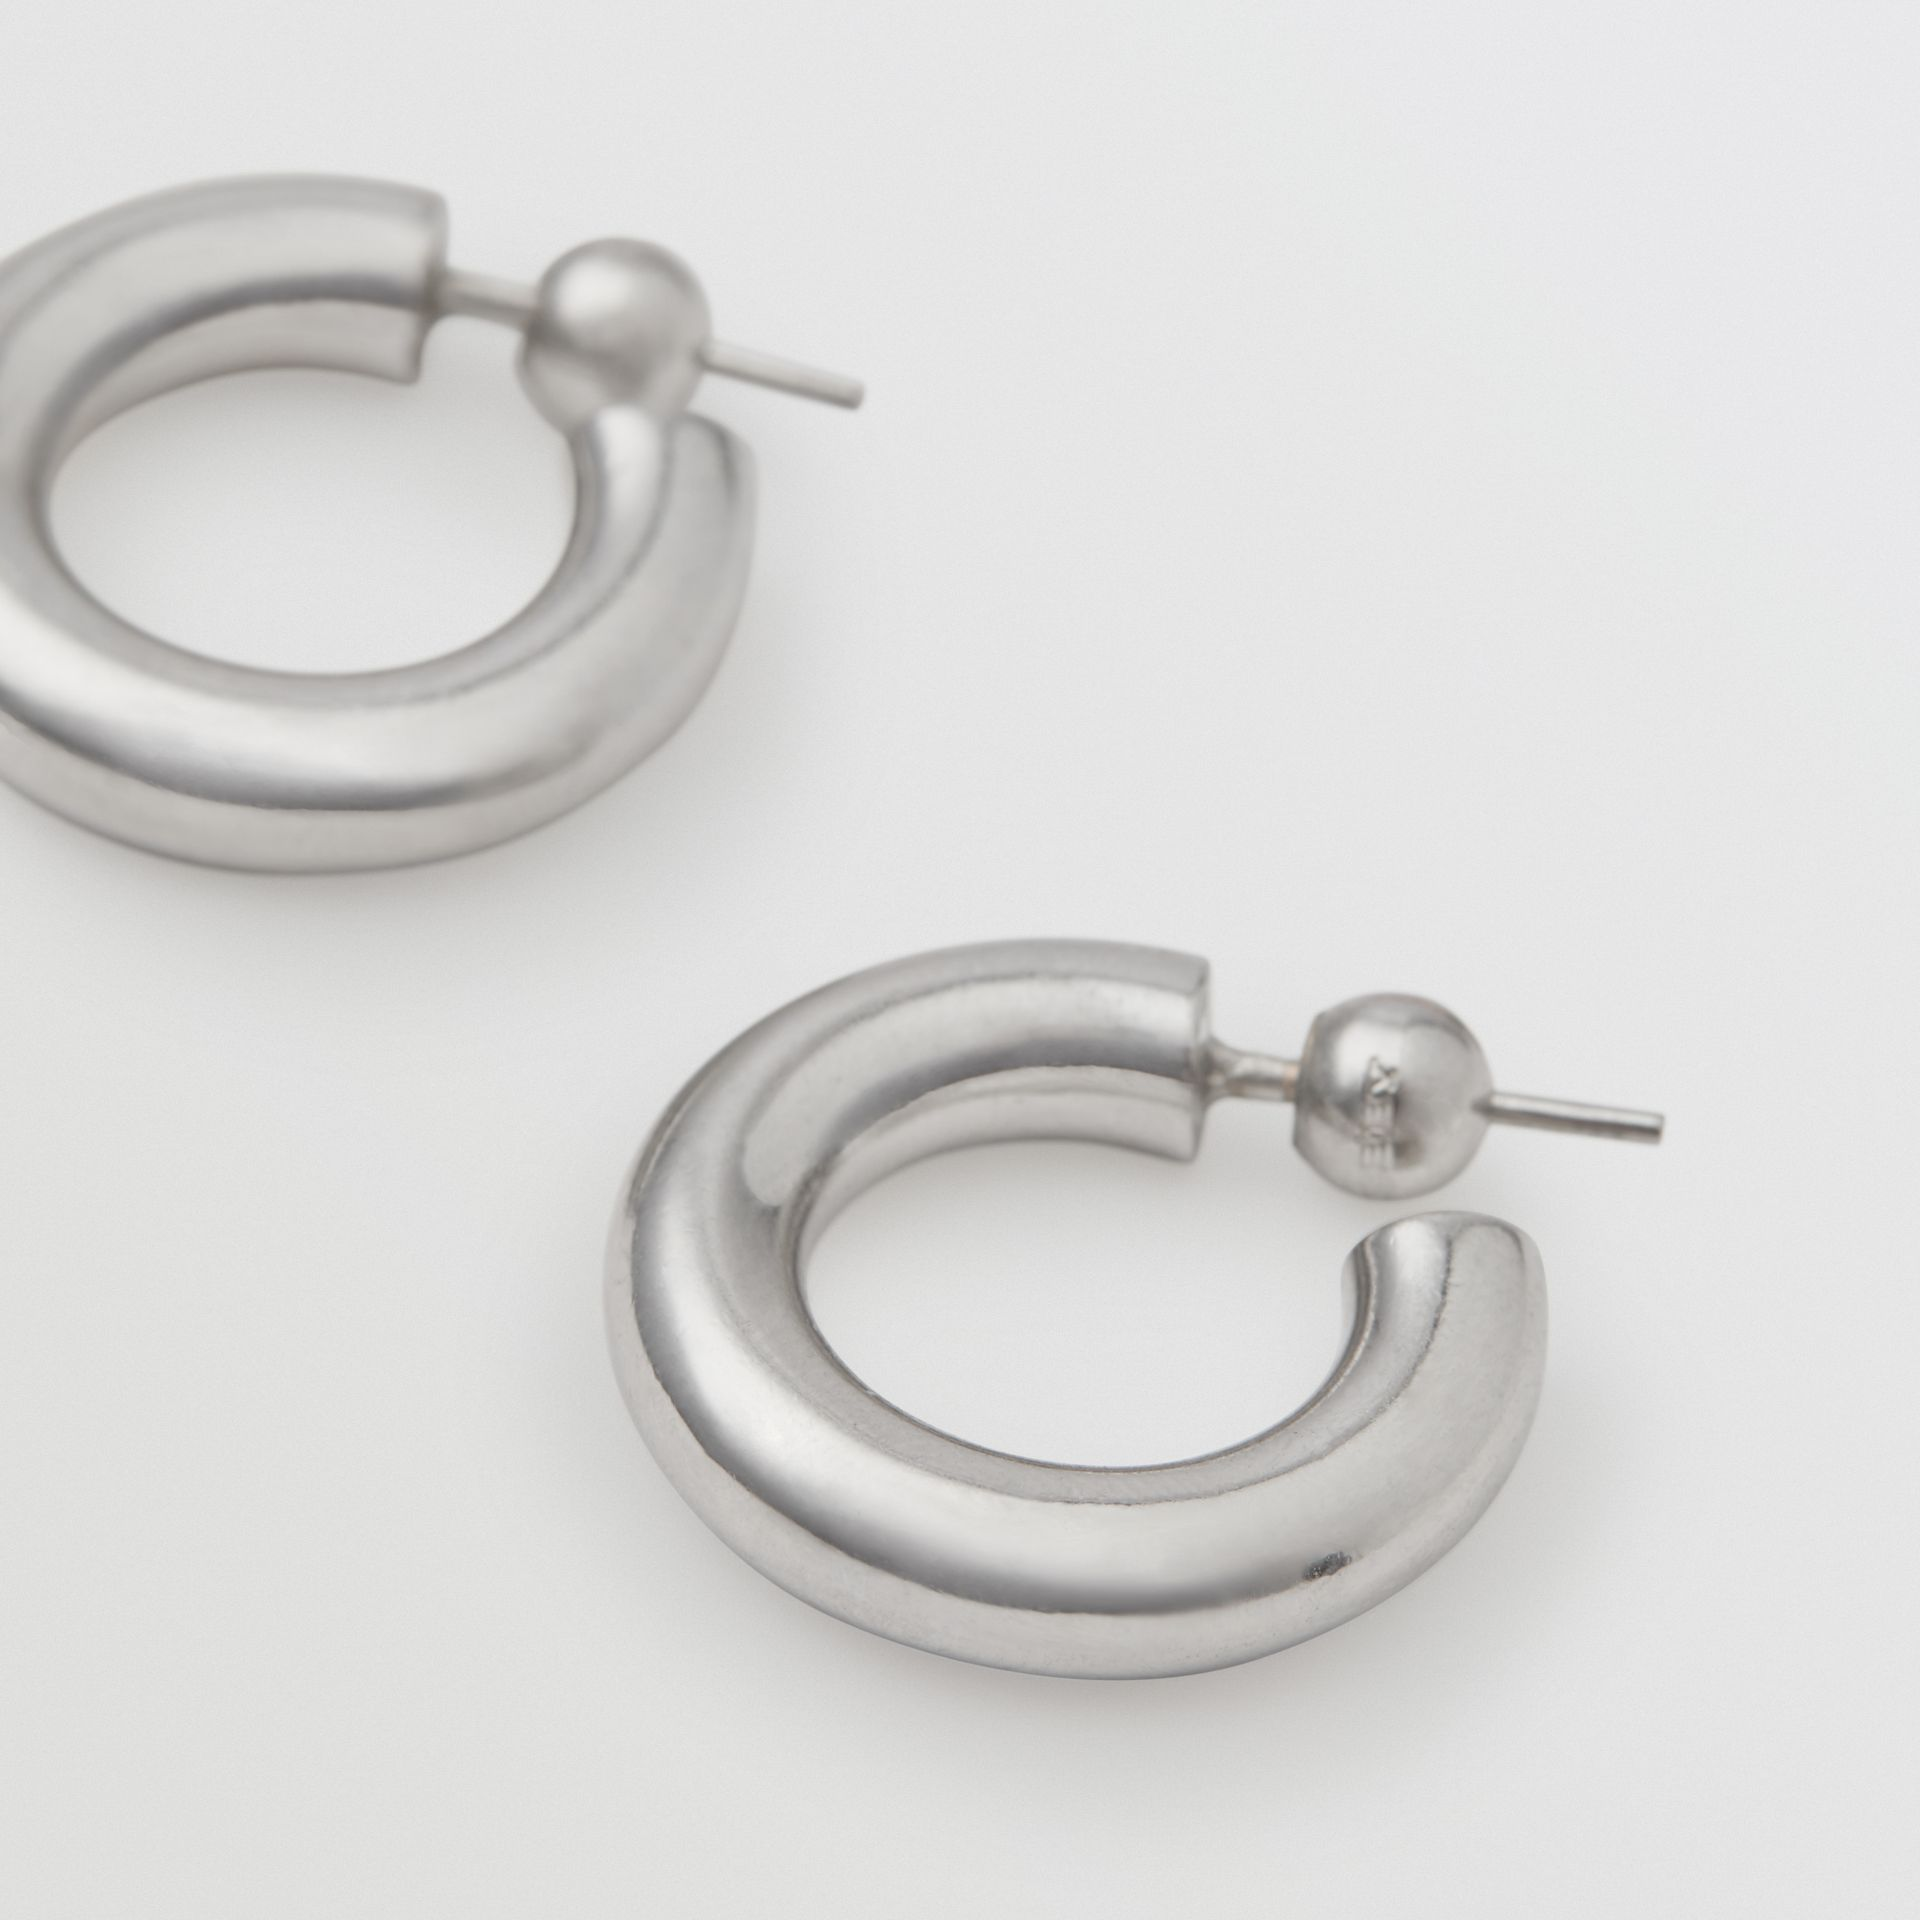 Palladium-plated Hoop Earrings in Palladio - Women | Burberry - gallery image 1